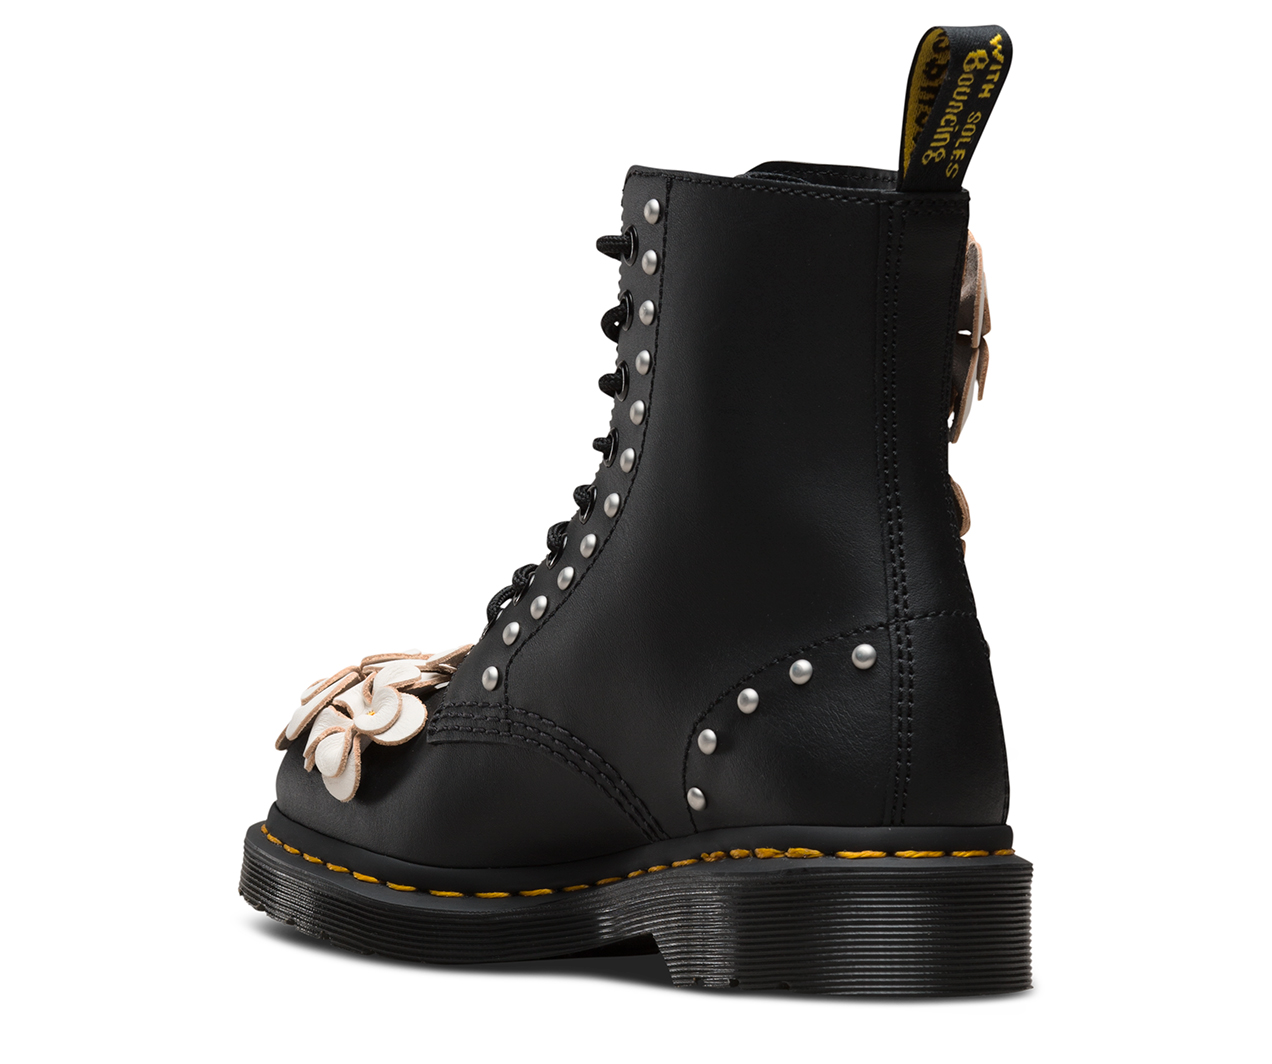 1460 PASCAL FLOWER   Womens   The Official FR Dr Martens Store 7102122c8508